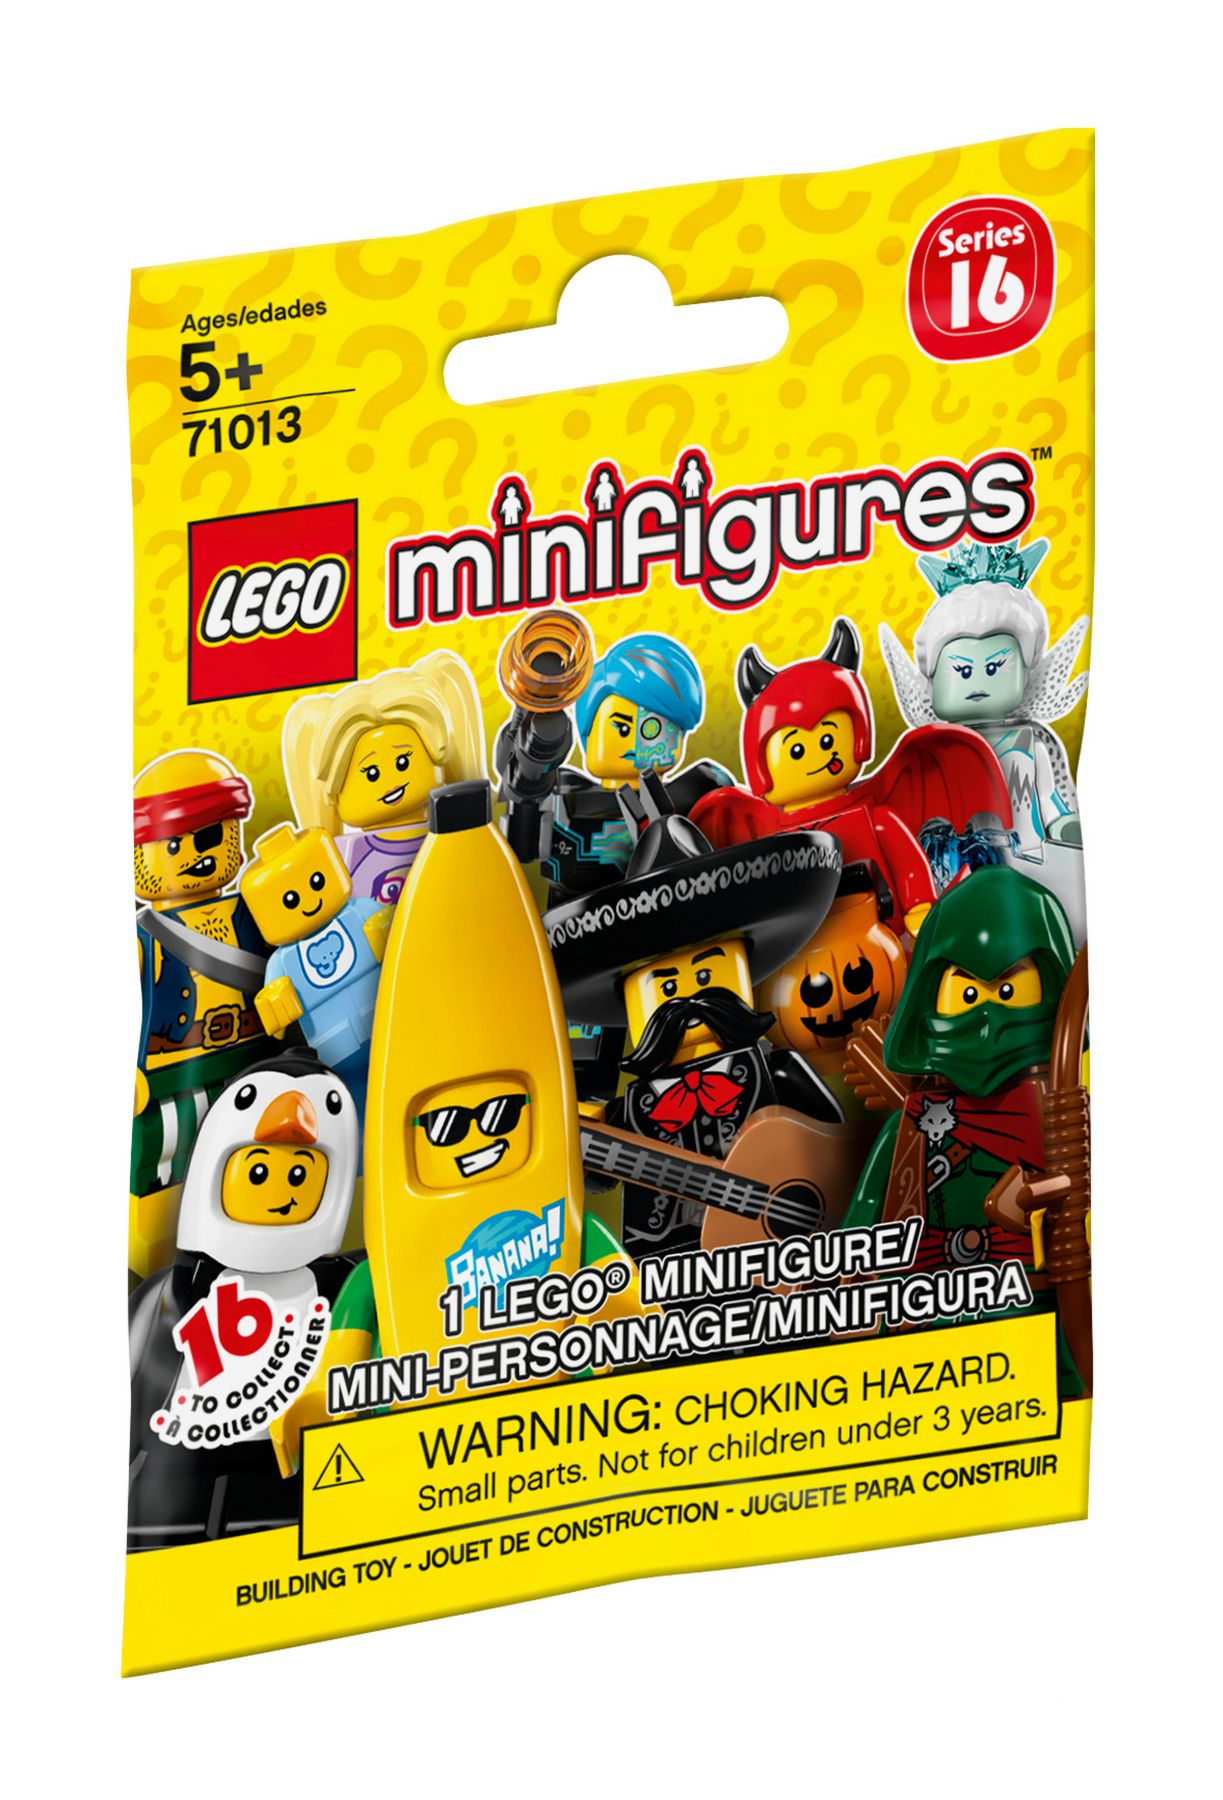 LEGO Collectable Minifigures 71013 LEGO® Minifiguren Serie 16